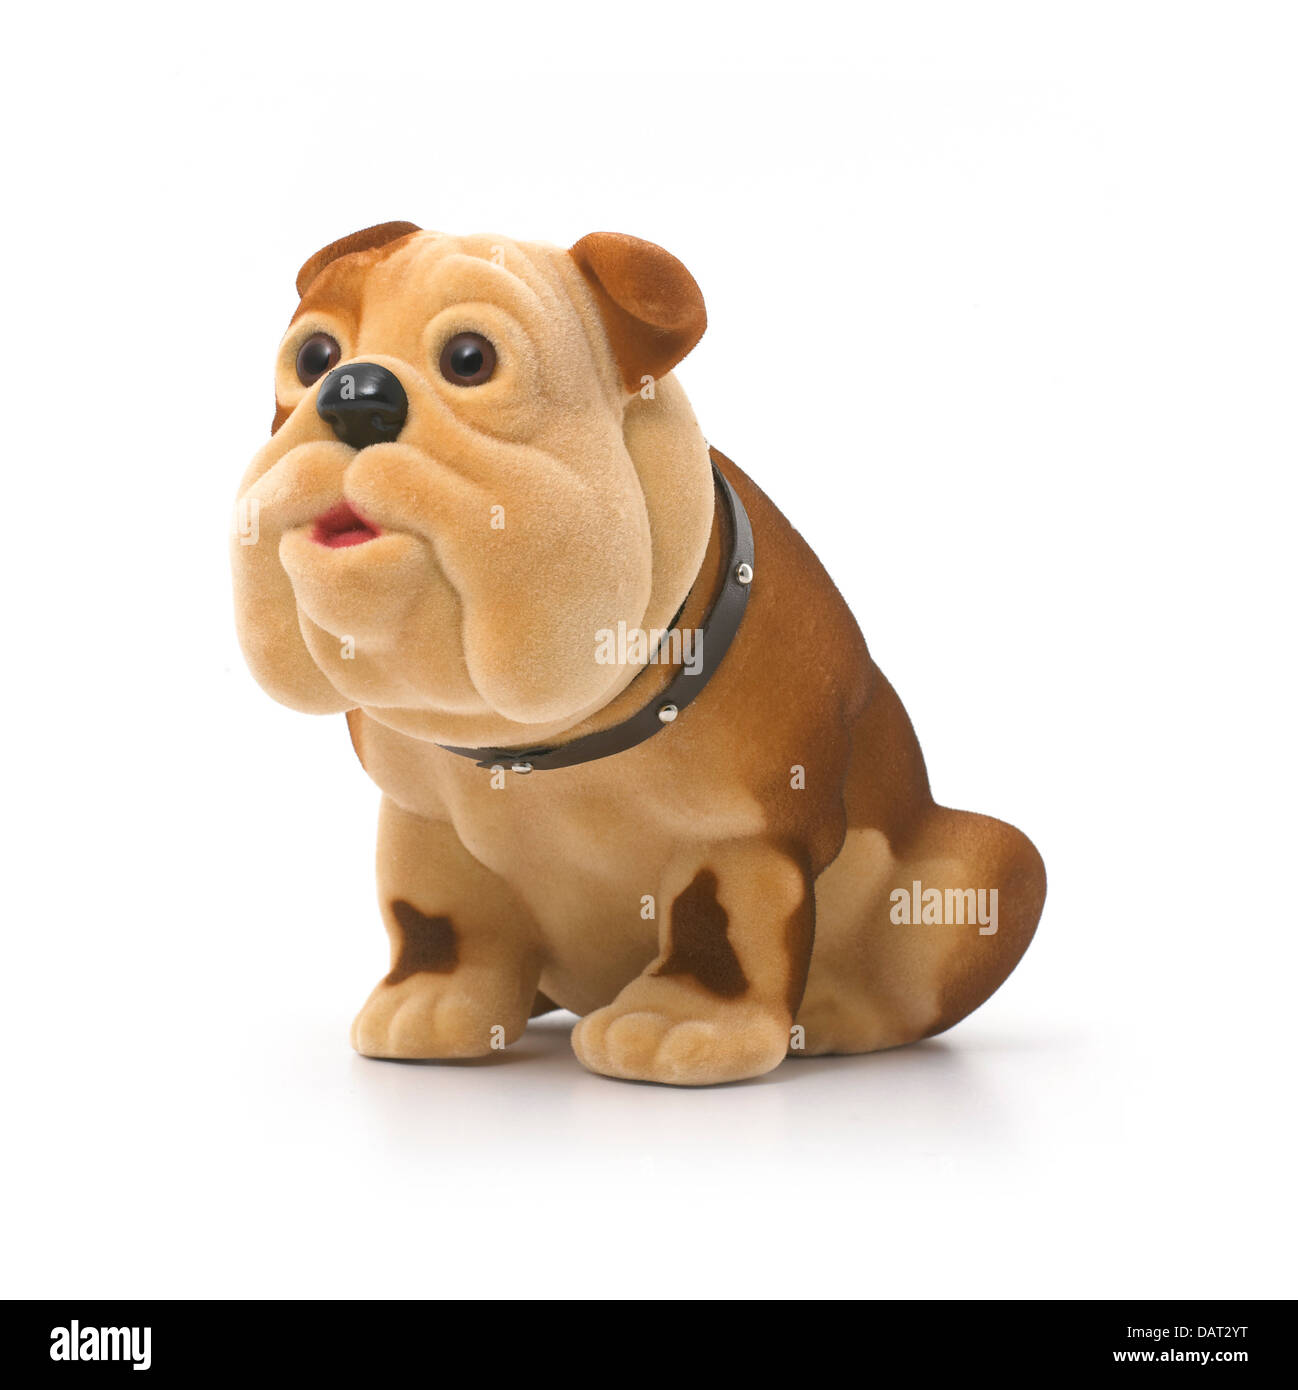 toy dog cut out onto a white background - Stock Image